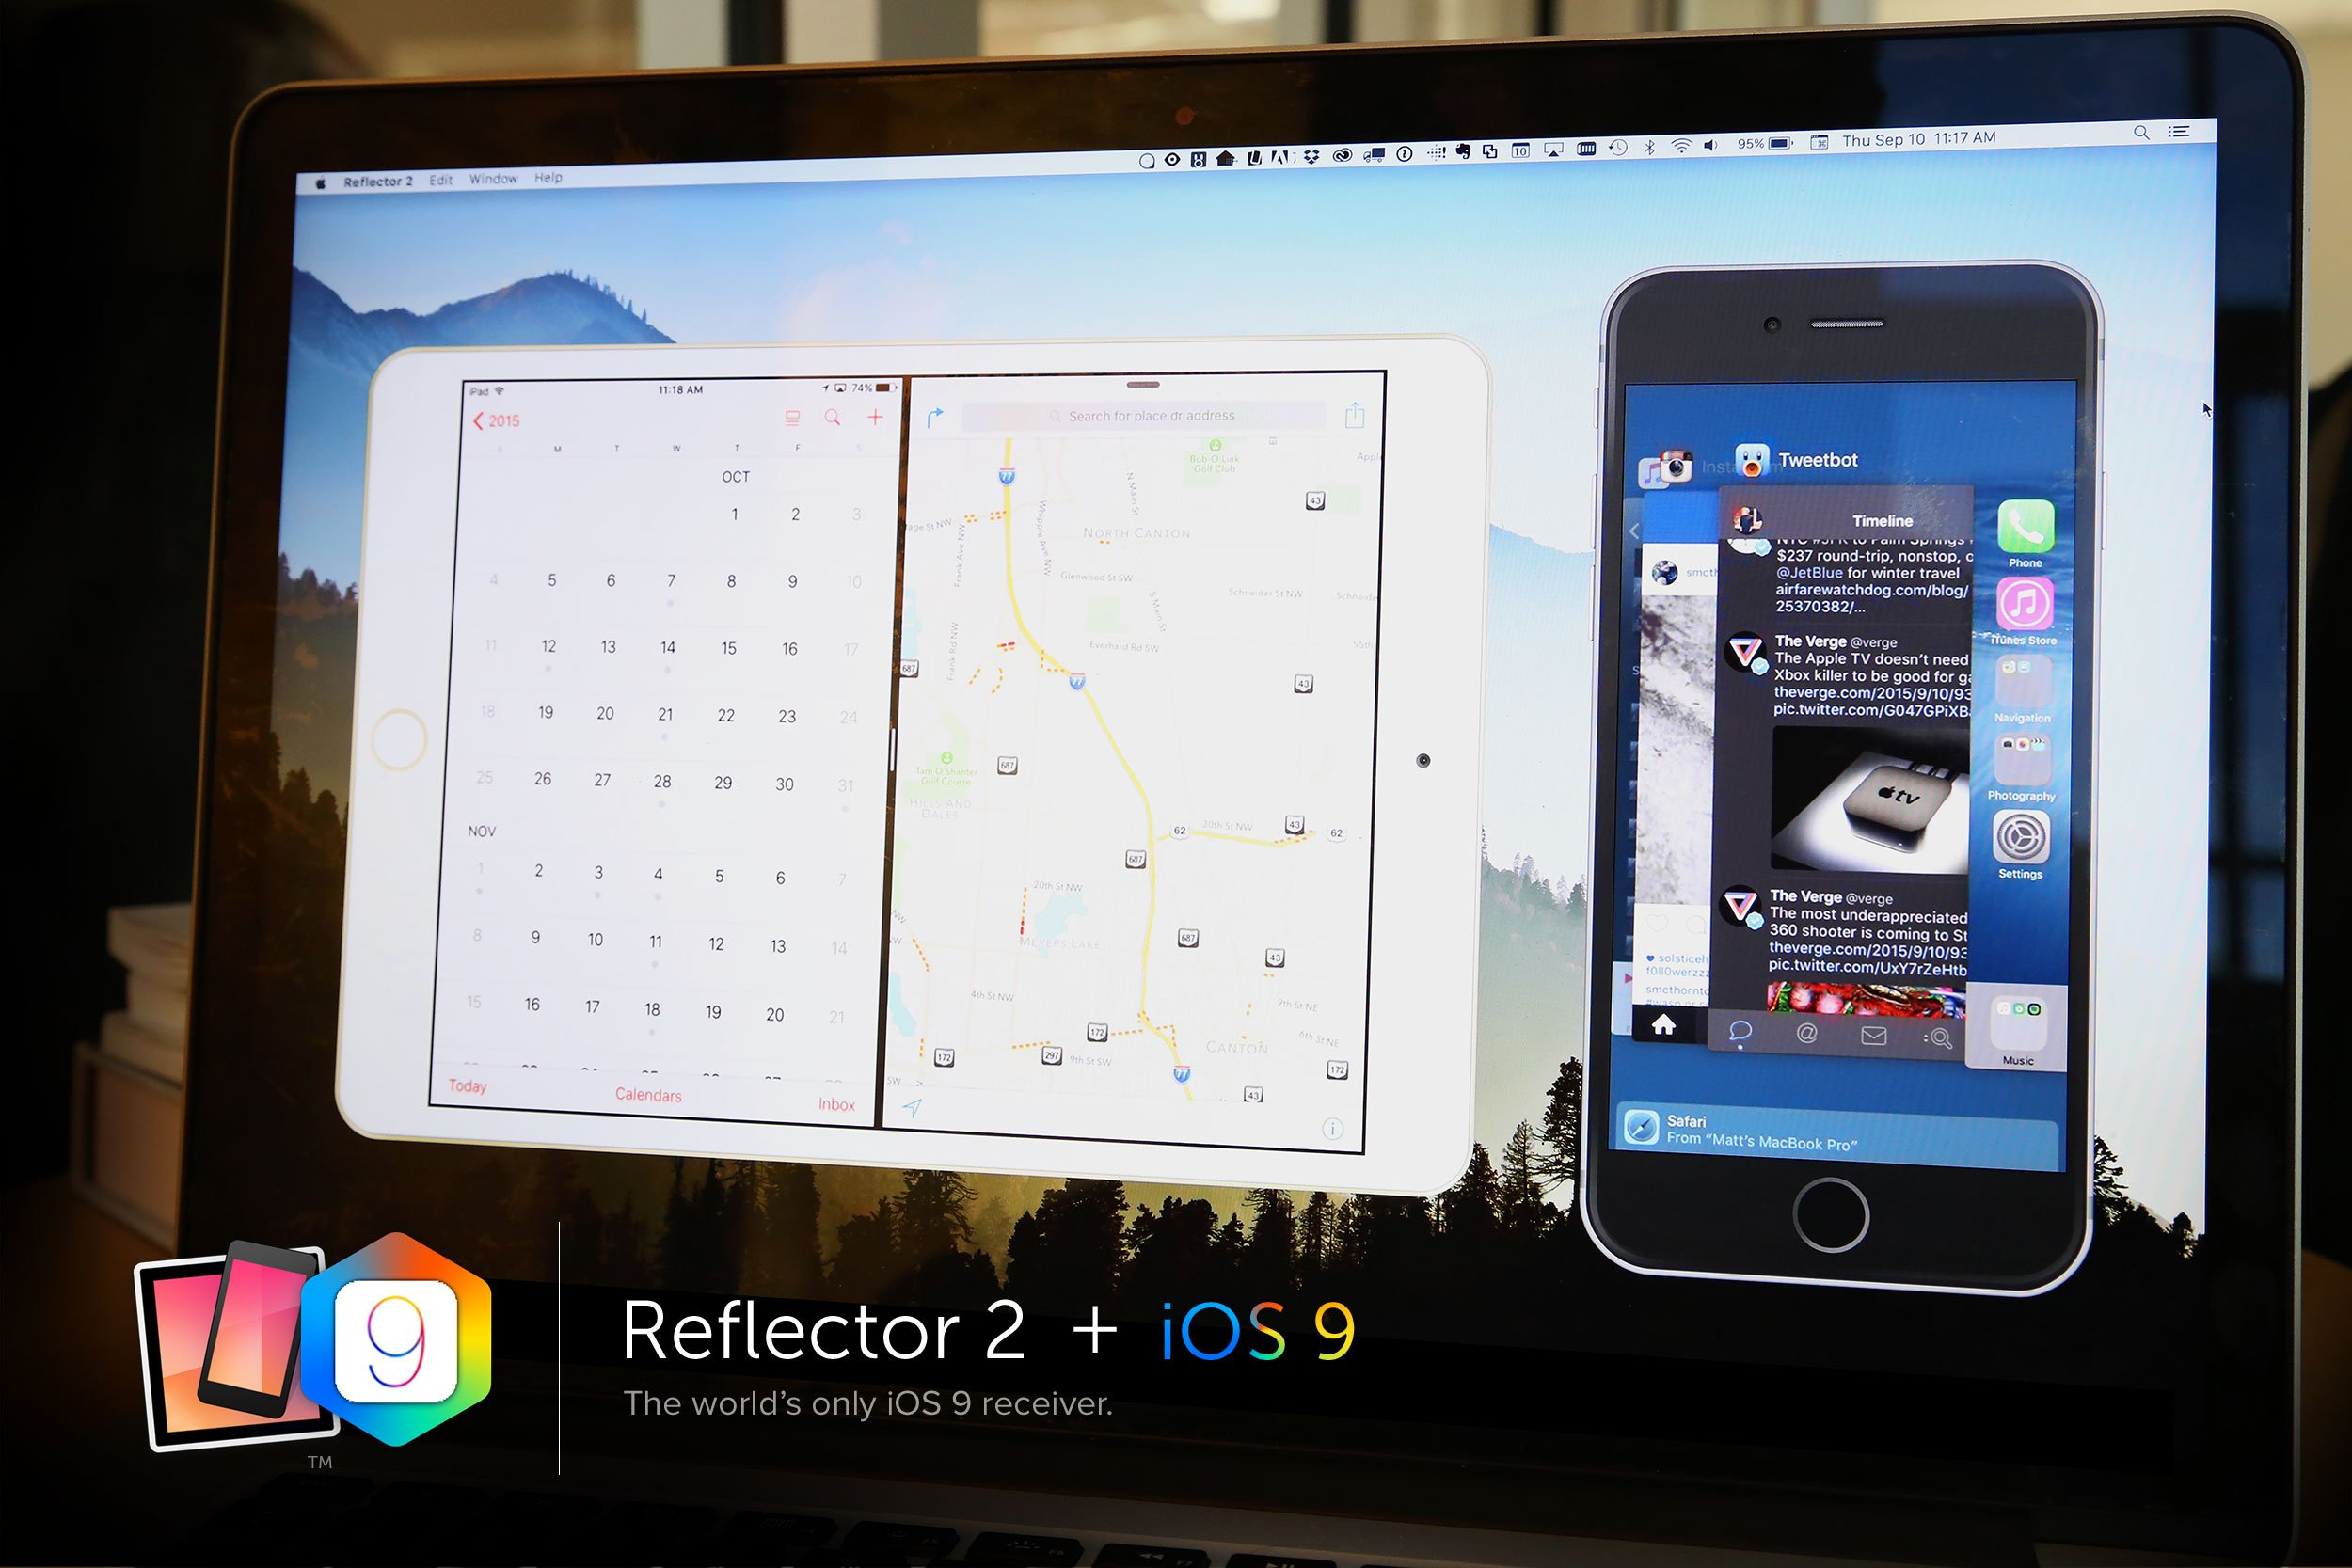 iOS 9 Screen-Mirroring Support Has Arrived